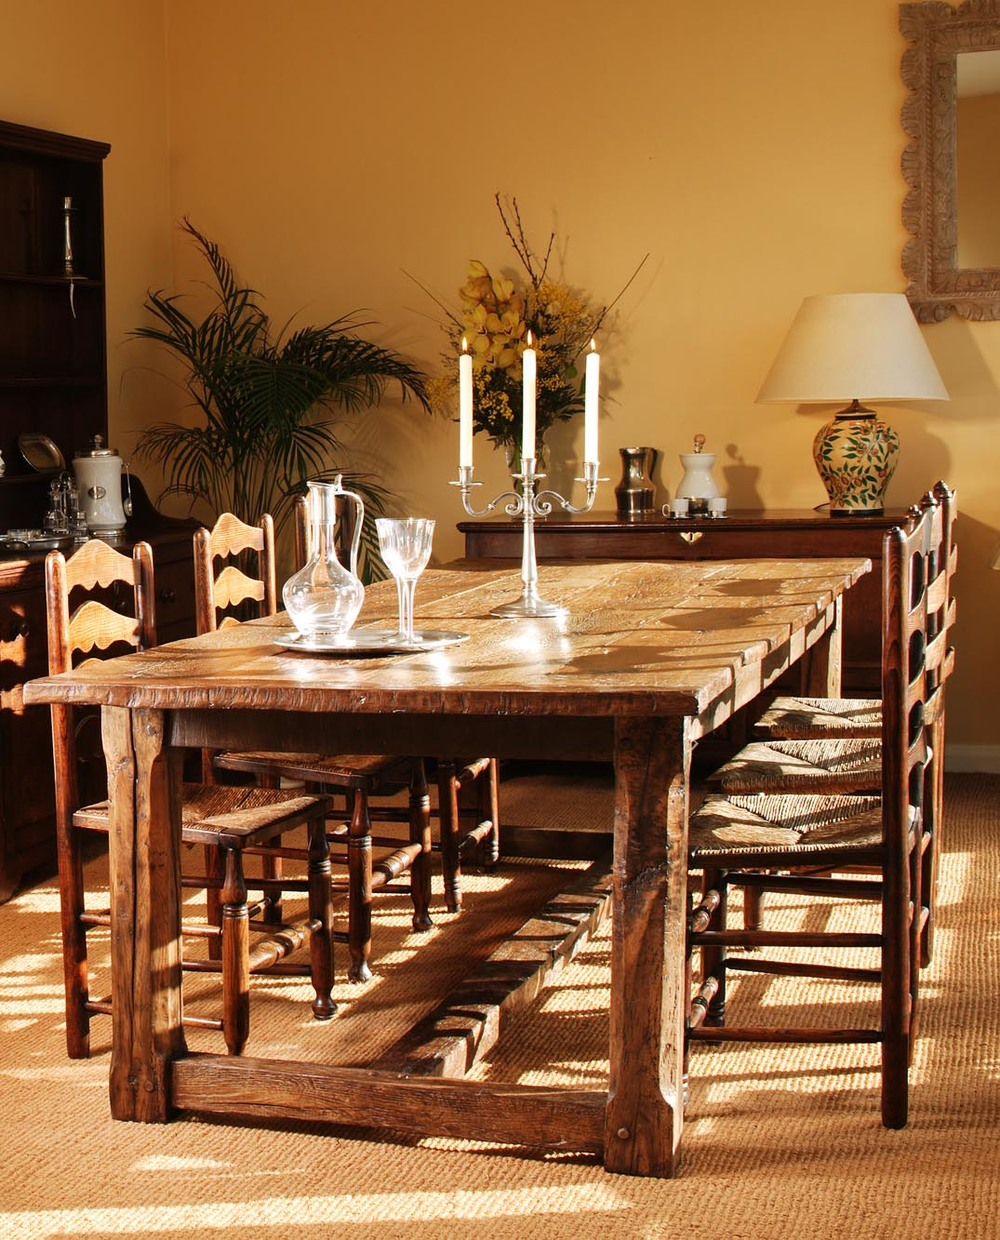 Stunning handmade oak refectory table and country chairs